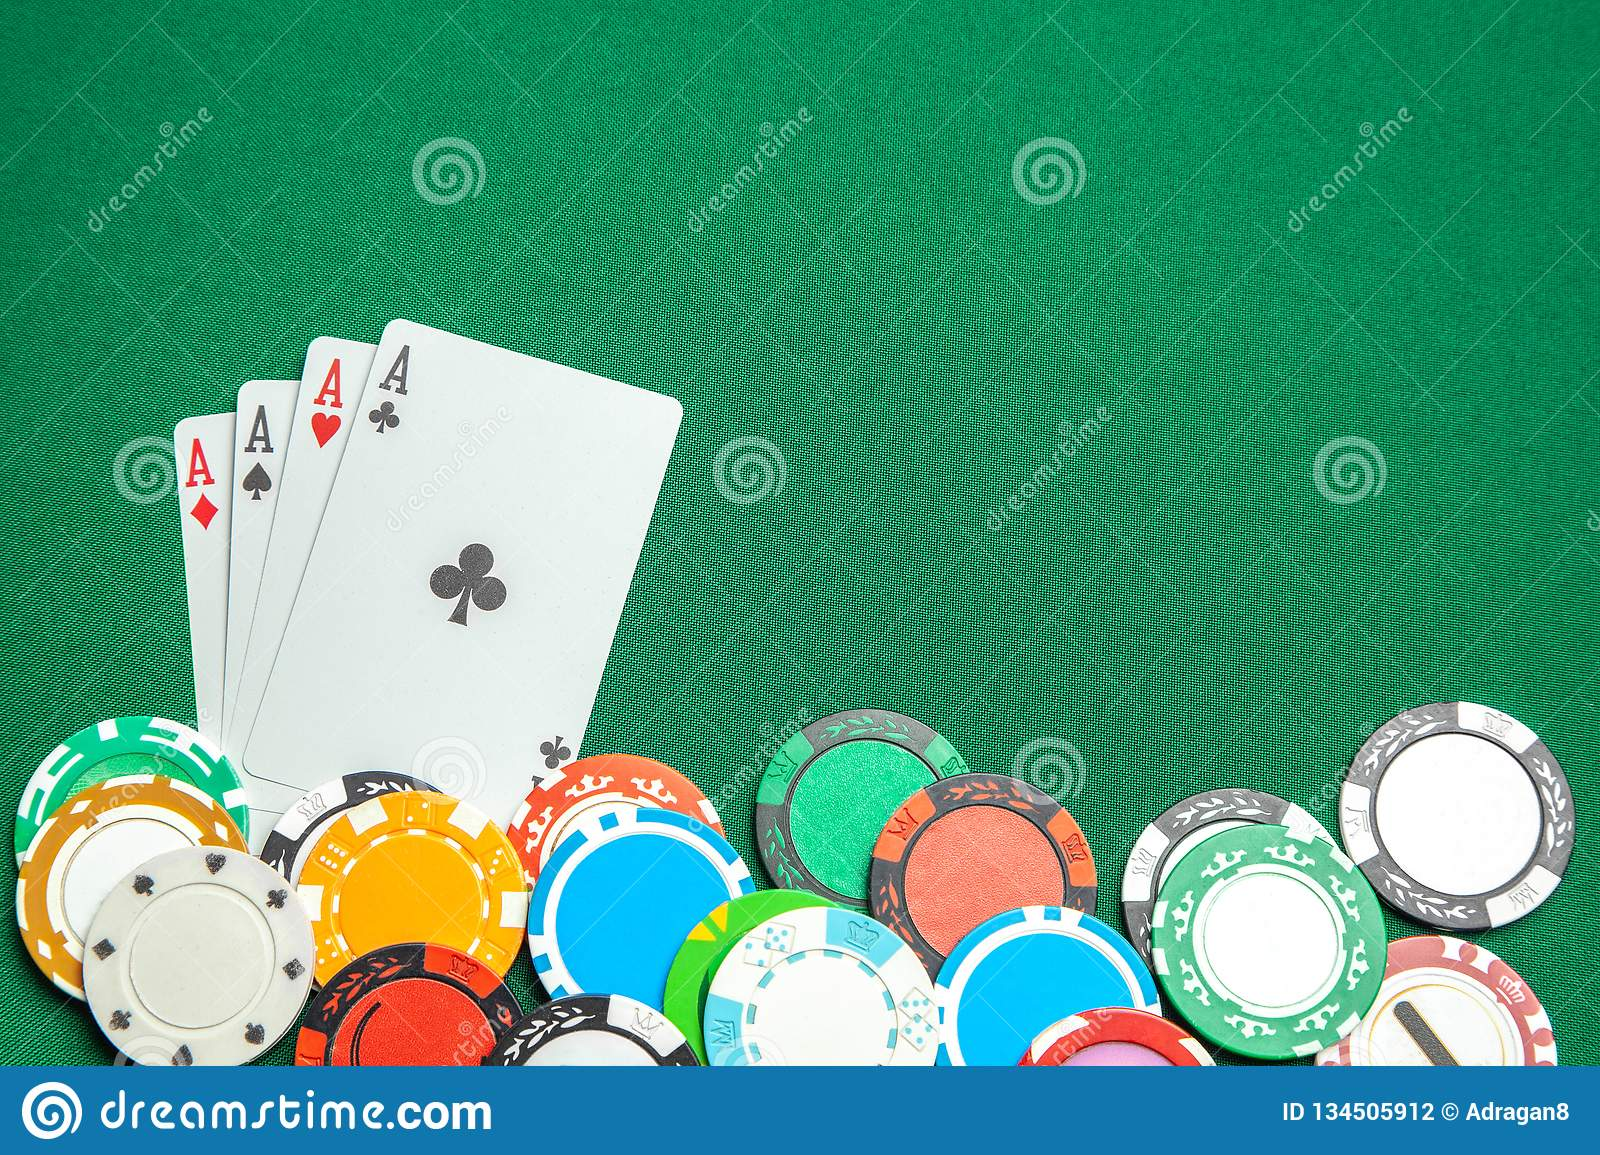 Concept Of Gambling In Casino, Sports Poker. Game Cards And Colored Chips  On Green Gaming Table. Copy Space For Text. Stock Photo - Image of risk,  heart: 134505912